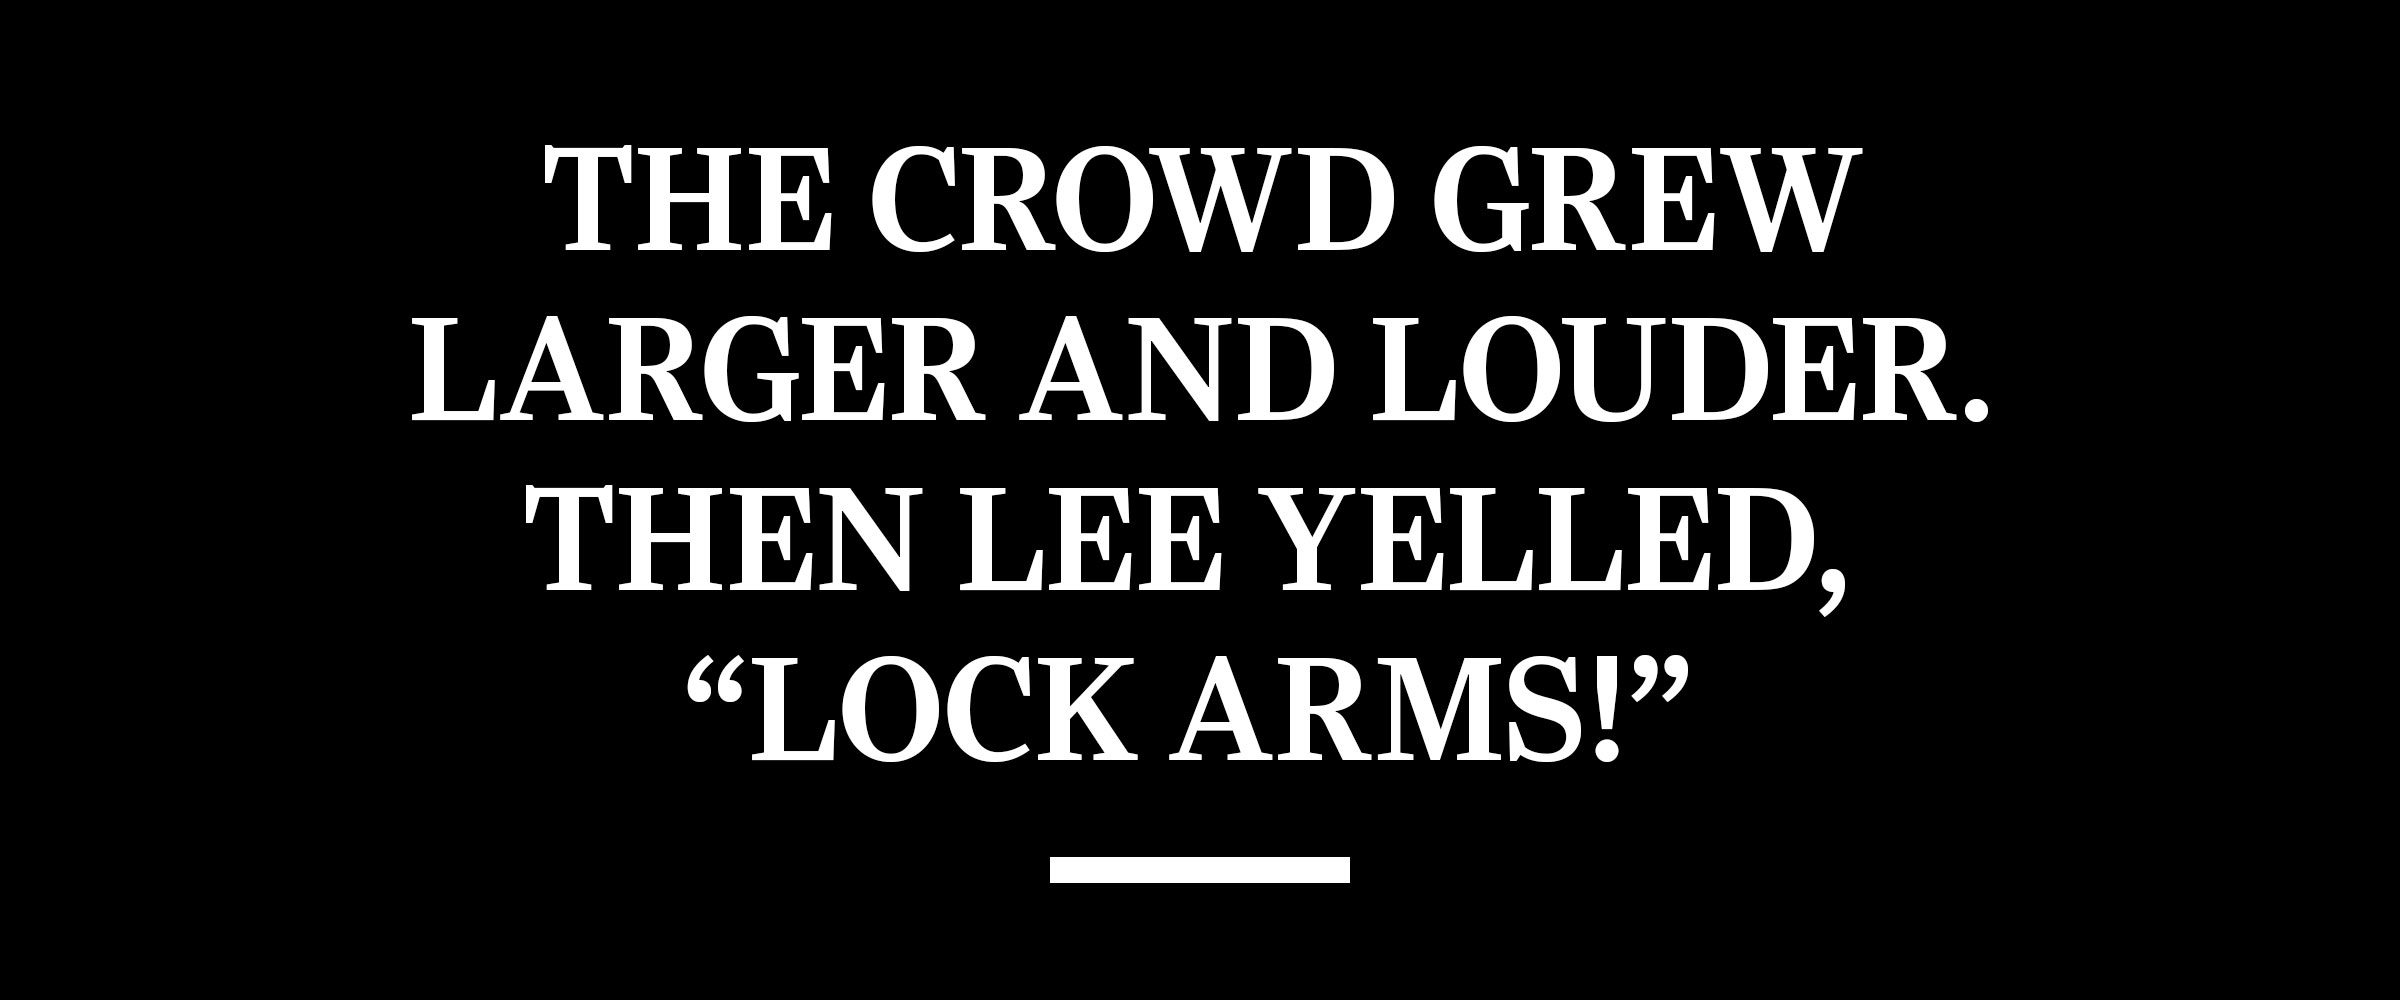 """text: The crowd grew larger and louder. Then Lee yelled, """"Lock arms!"""""""